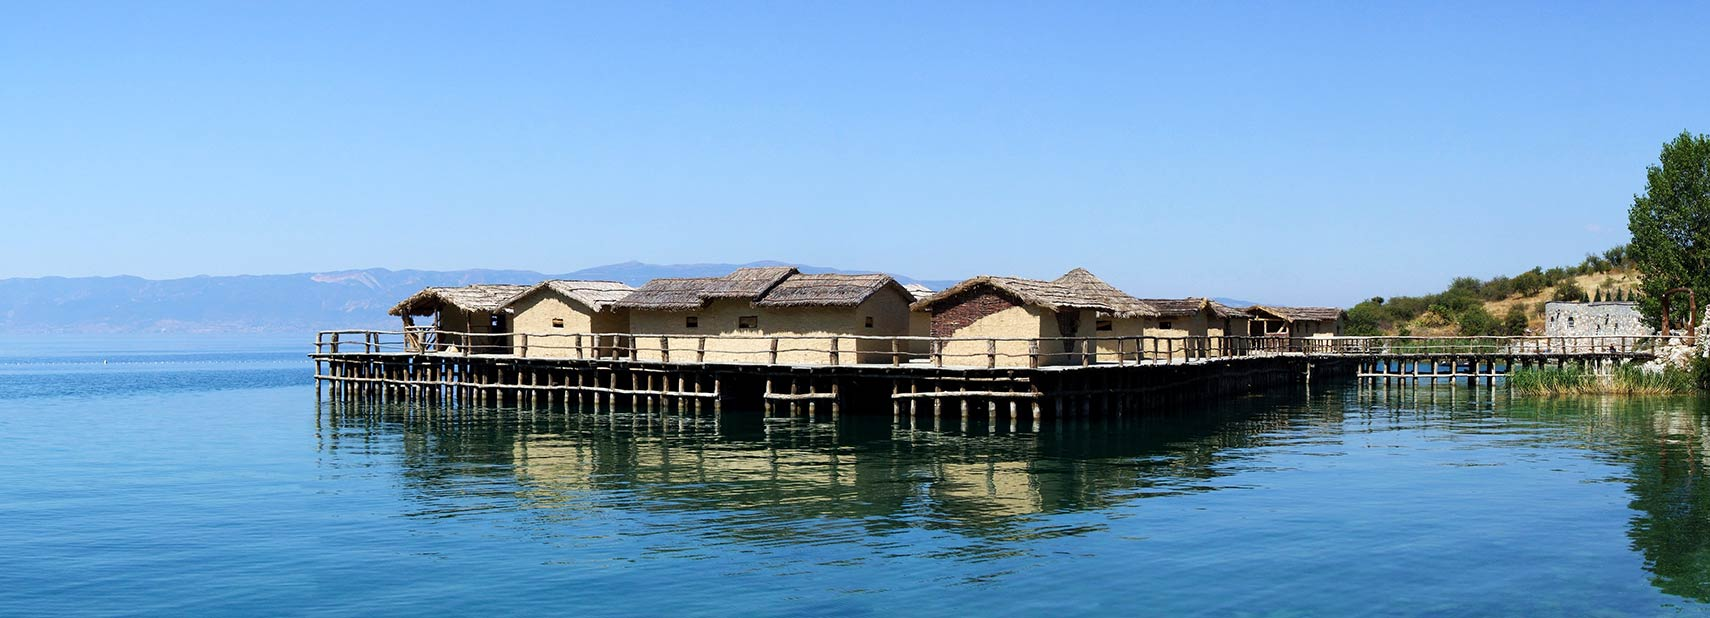 Bronze Age stilt houses on Lake Ohrid